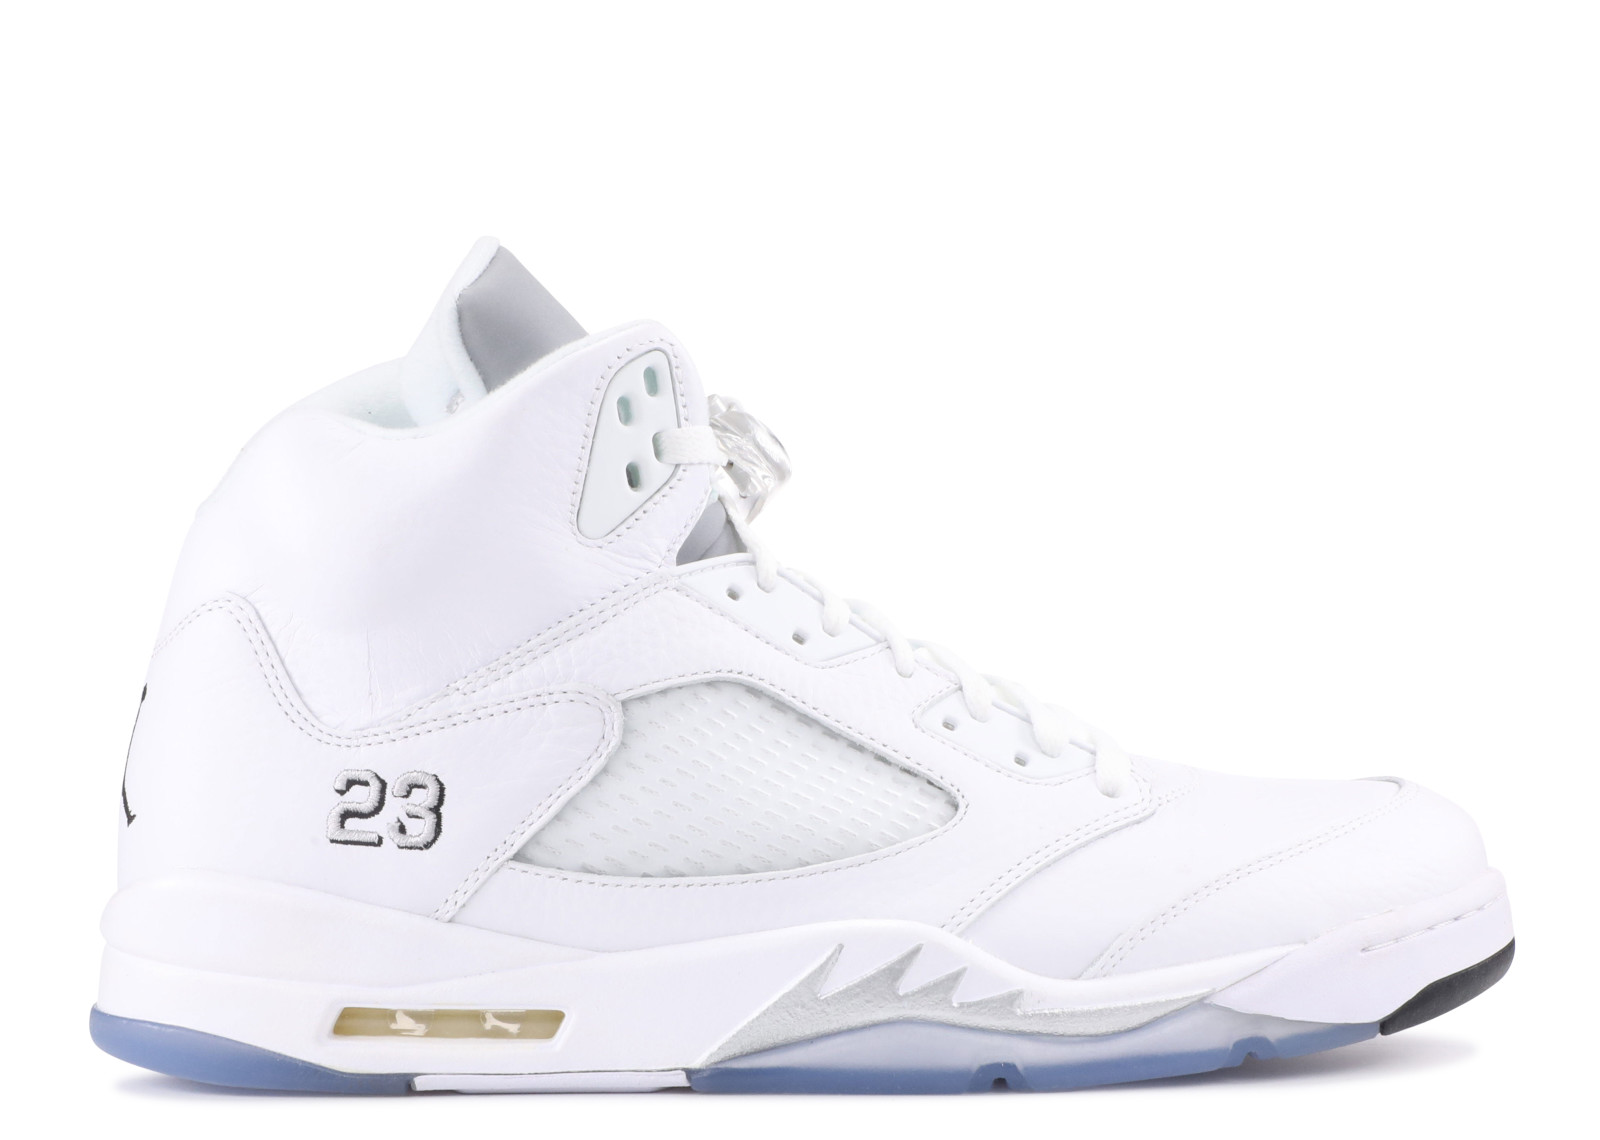 Air Jordan 5 Metallic Silver 2015 Release